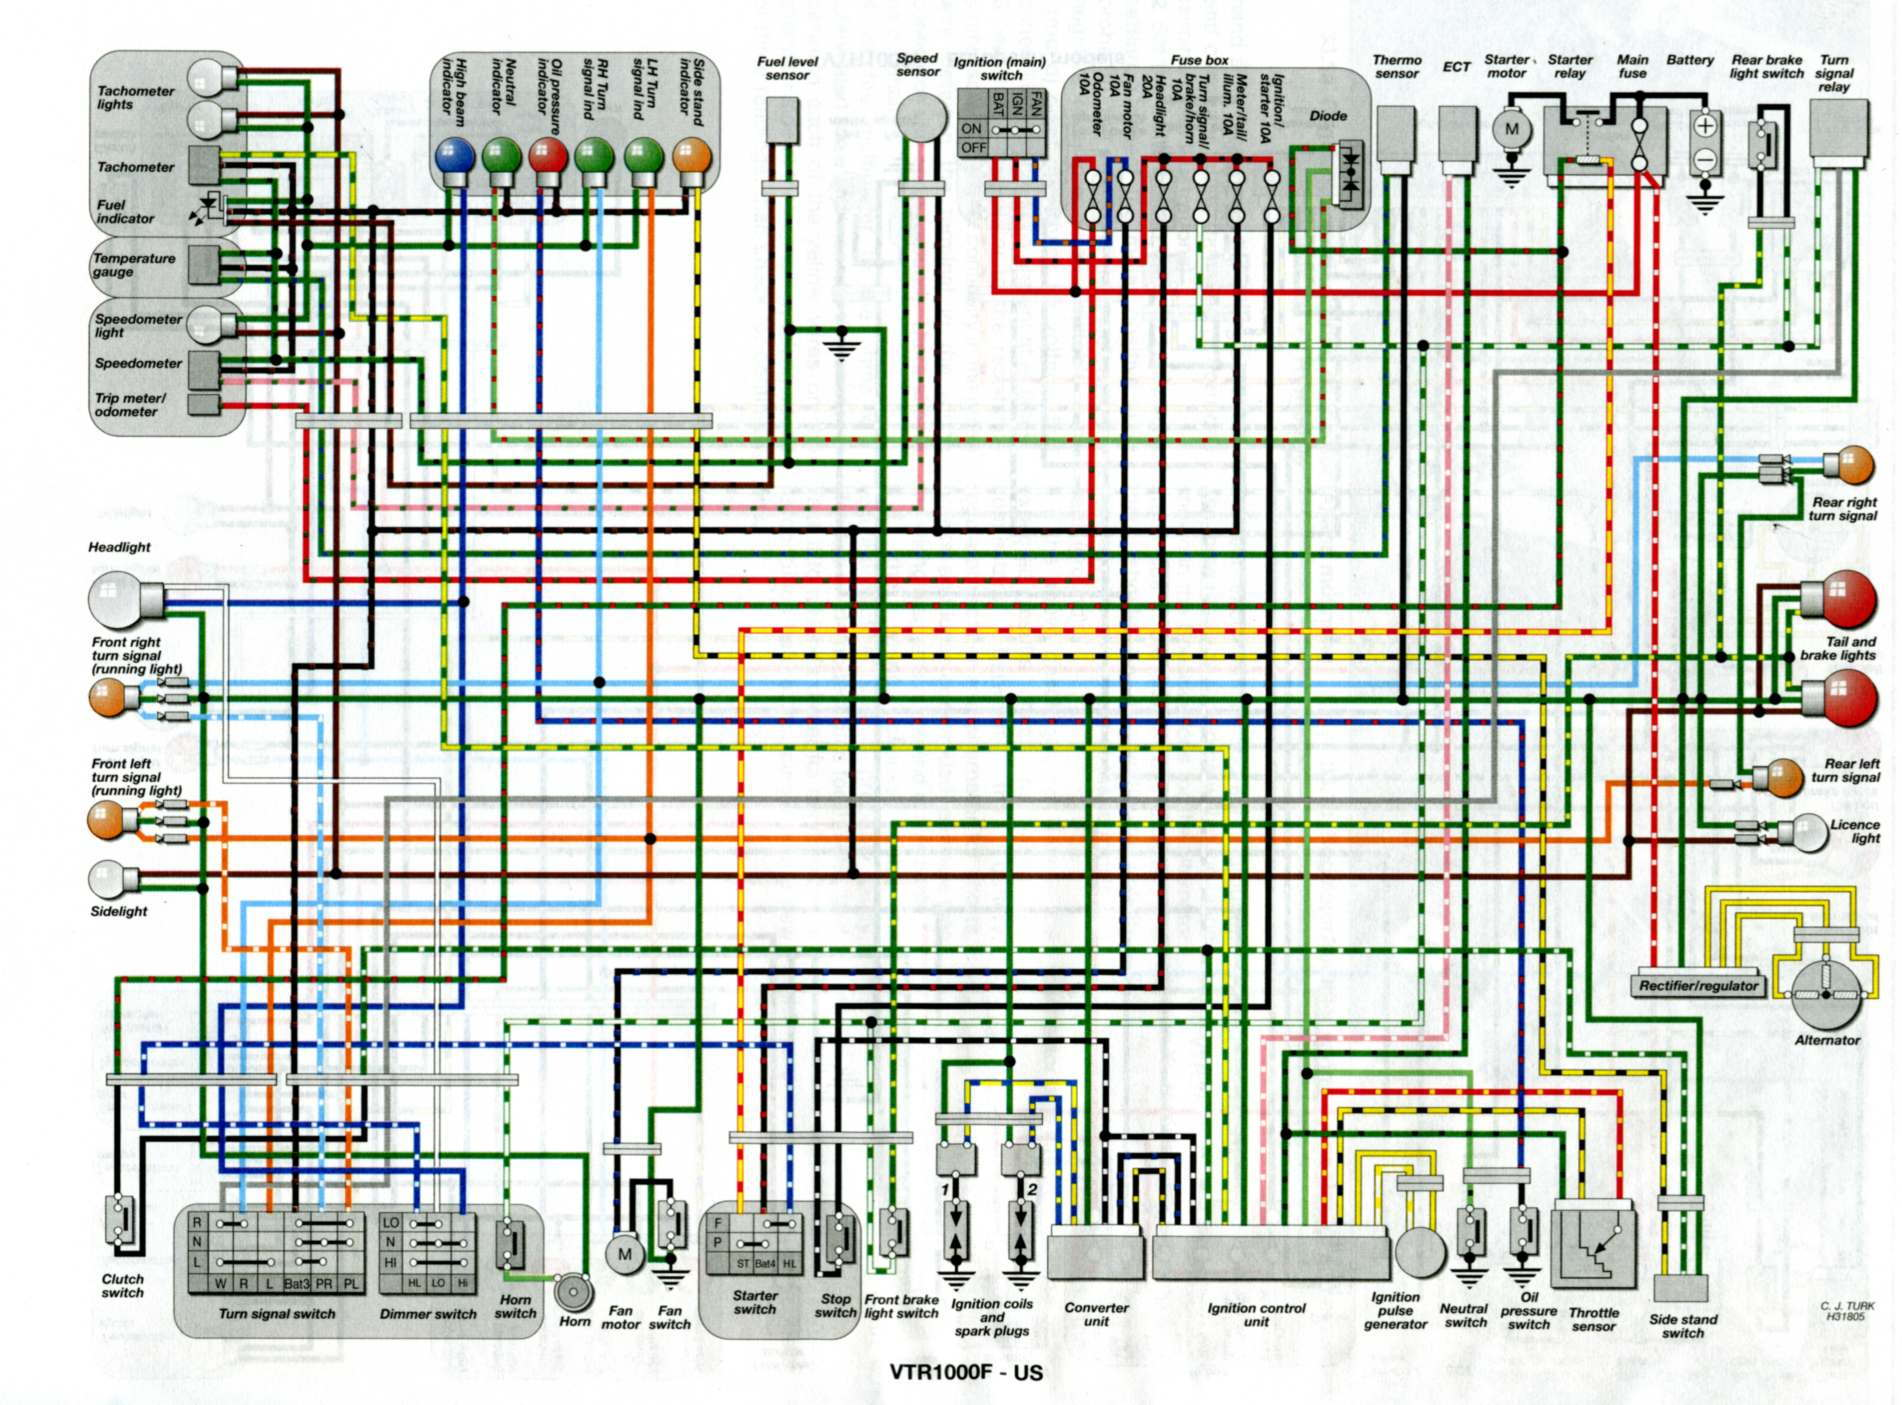 Rc51 Sp2 Wiring Diagram Just Another Data Cbr250 Whos Still Around Lets Talk Hawks Superhawk Forum Is You Would Need